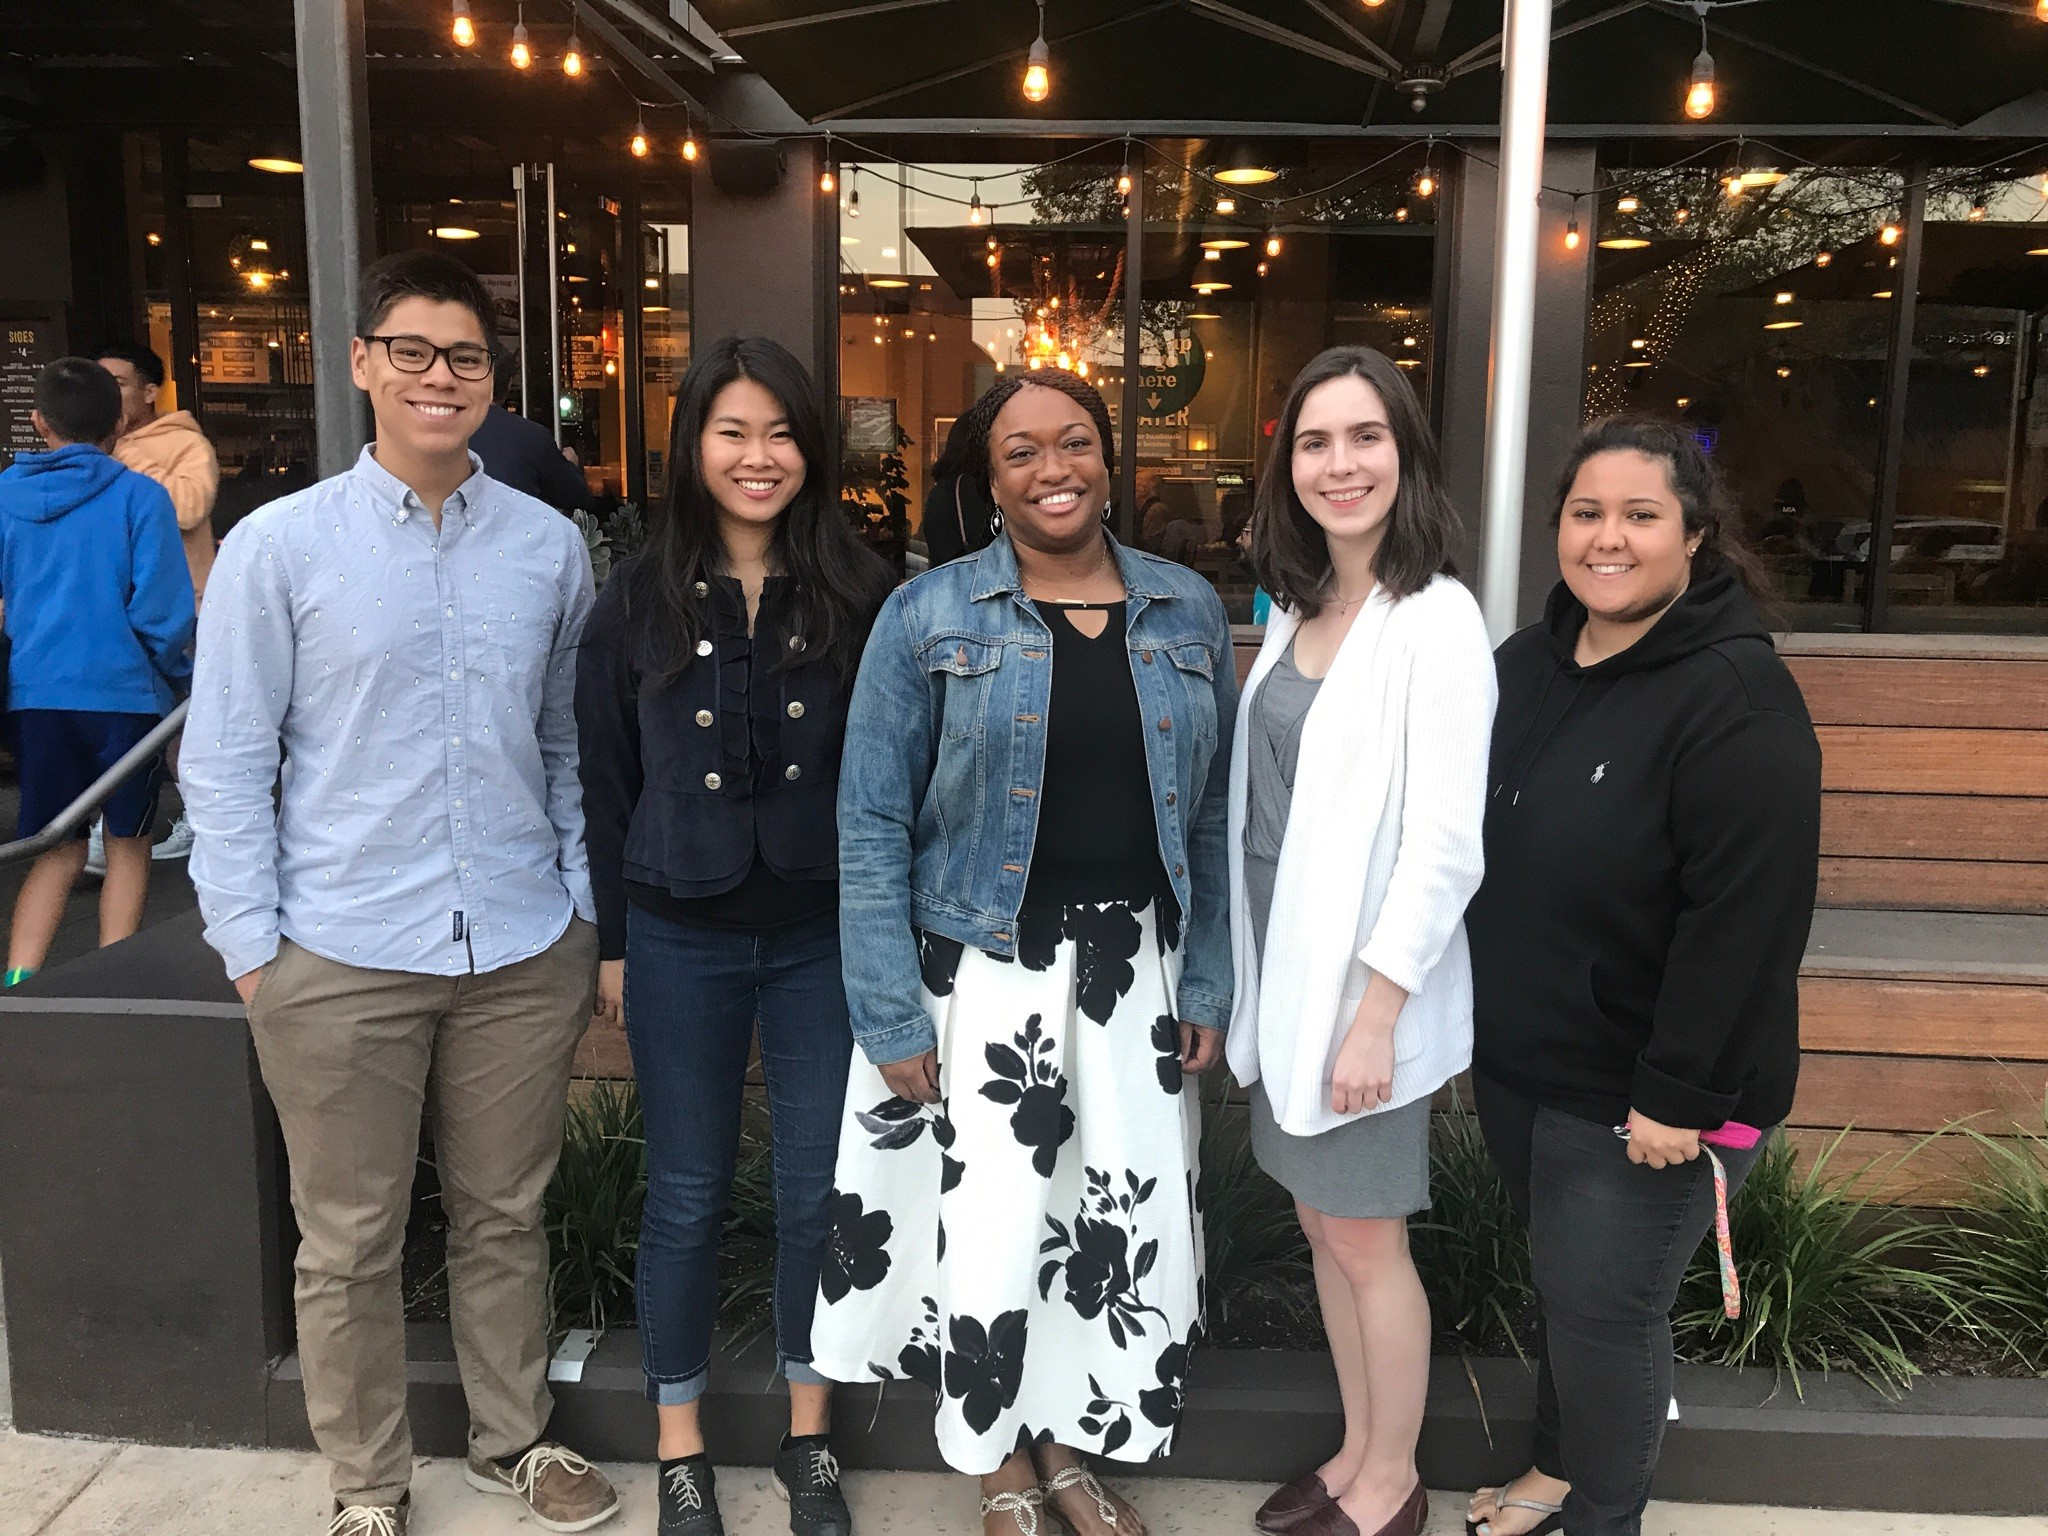 Tashica Williams Amirgholizadeh (PhD '04) hosted 4 undergraduate students for dinner at Urban Plates in Pasadena on Friday, April 28, 2018.